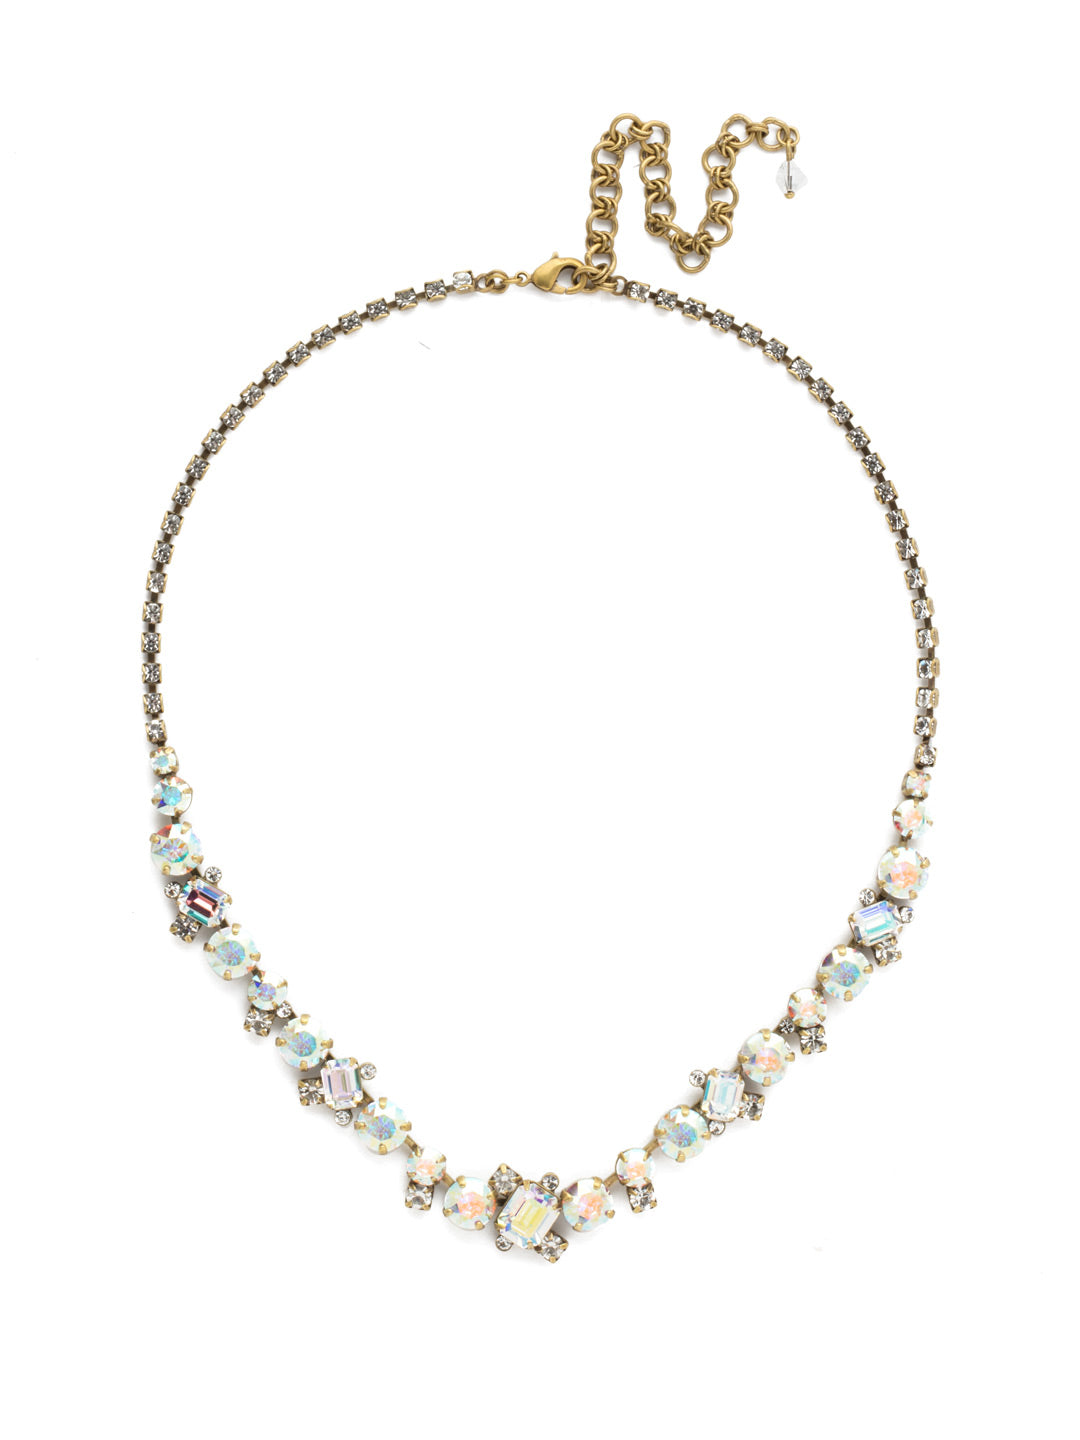 Sophisticated Tennis Necklace - NDK17AGSNF